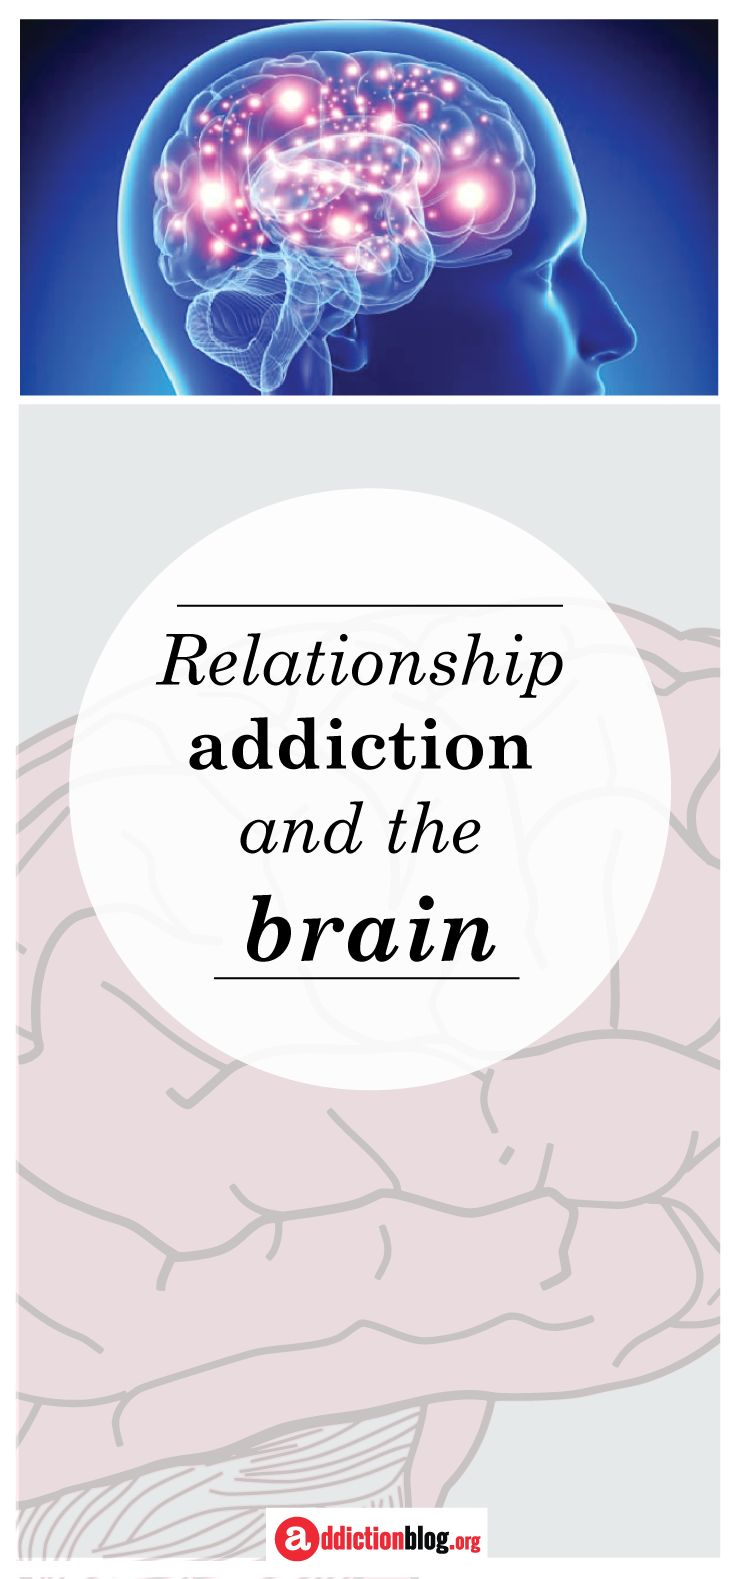 """Relationship addiction is one of many behavioral addictions. Drug addiction is formed in the brain's reward center when substances stimulate the release of dopamine and we feel good. Similarly, the brain can become trained to release dopamine at the pleasure received from activities such as shopping or gambling. Here, we explain more about the formation of behavioral and relationship #addiction. Explore and grow! """"a"""" is for Addiction Blog"""